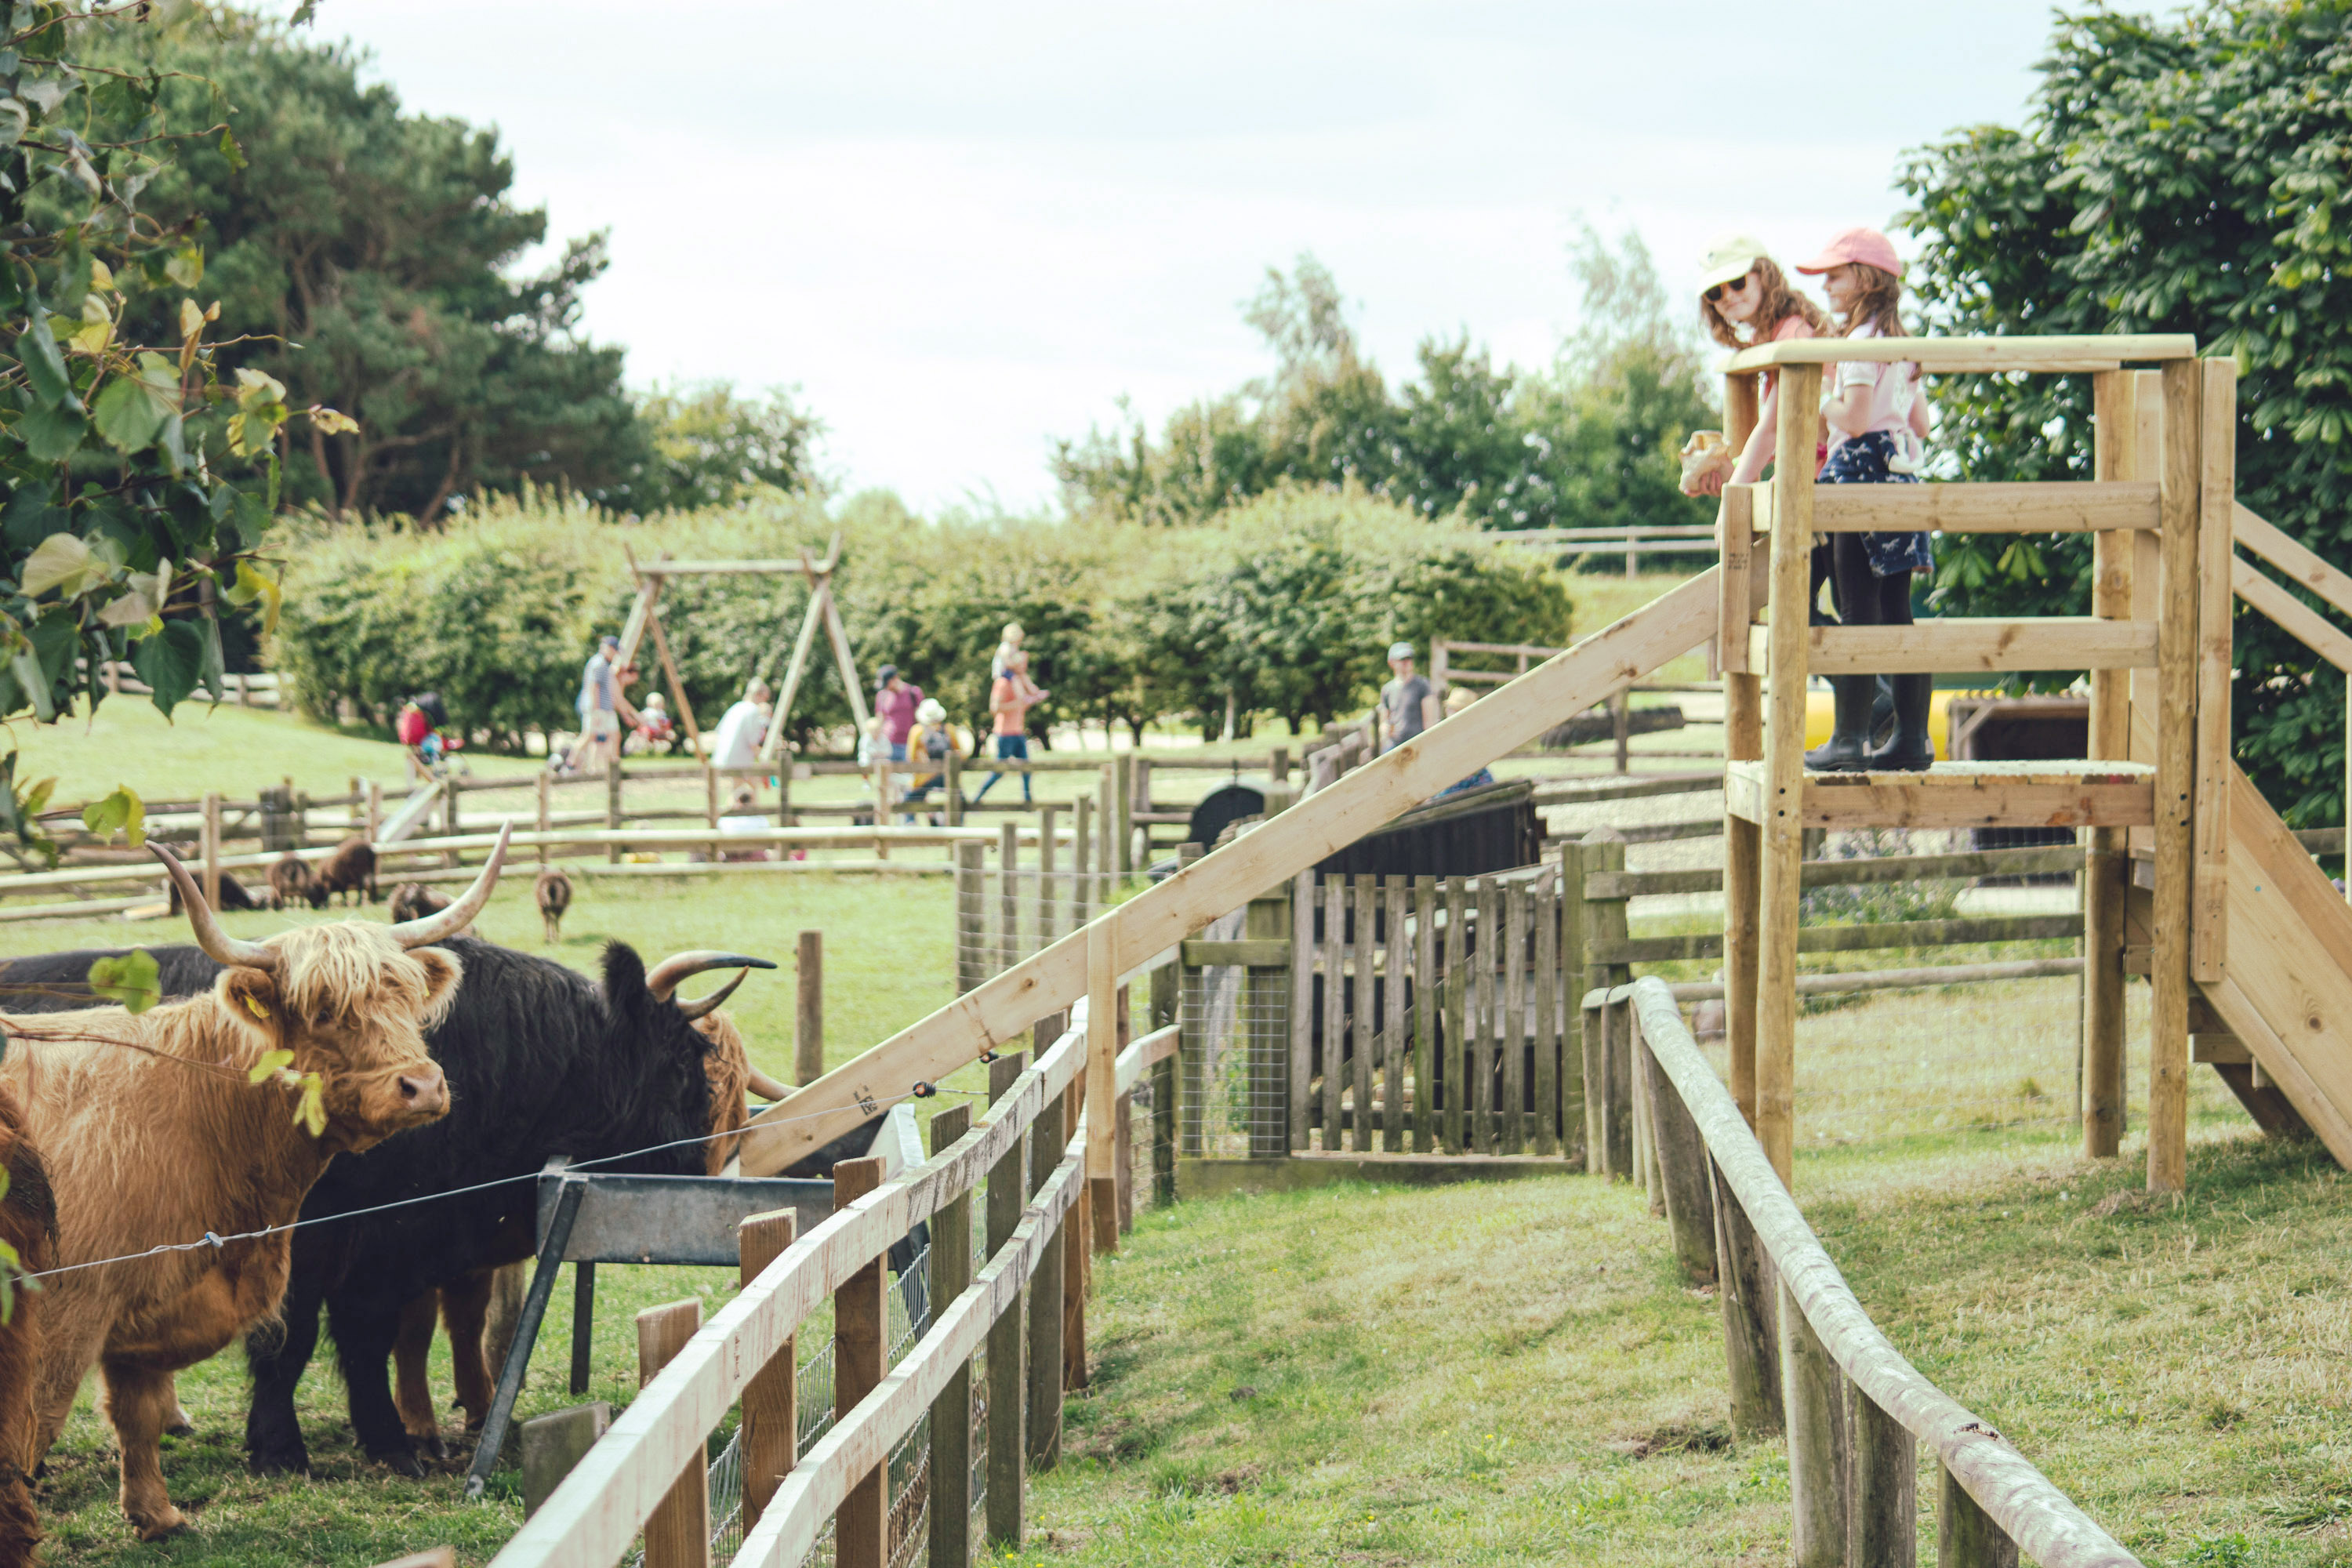 Farm attractions gloucestershire, cotswold farm attraction, days out with kids cotswolds, adam henson, cotswold farm park